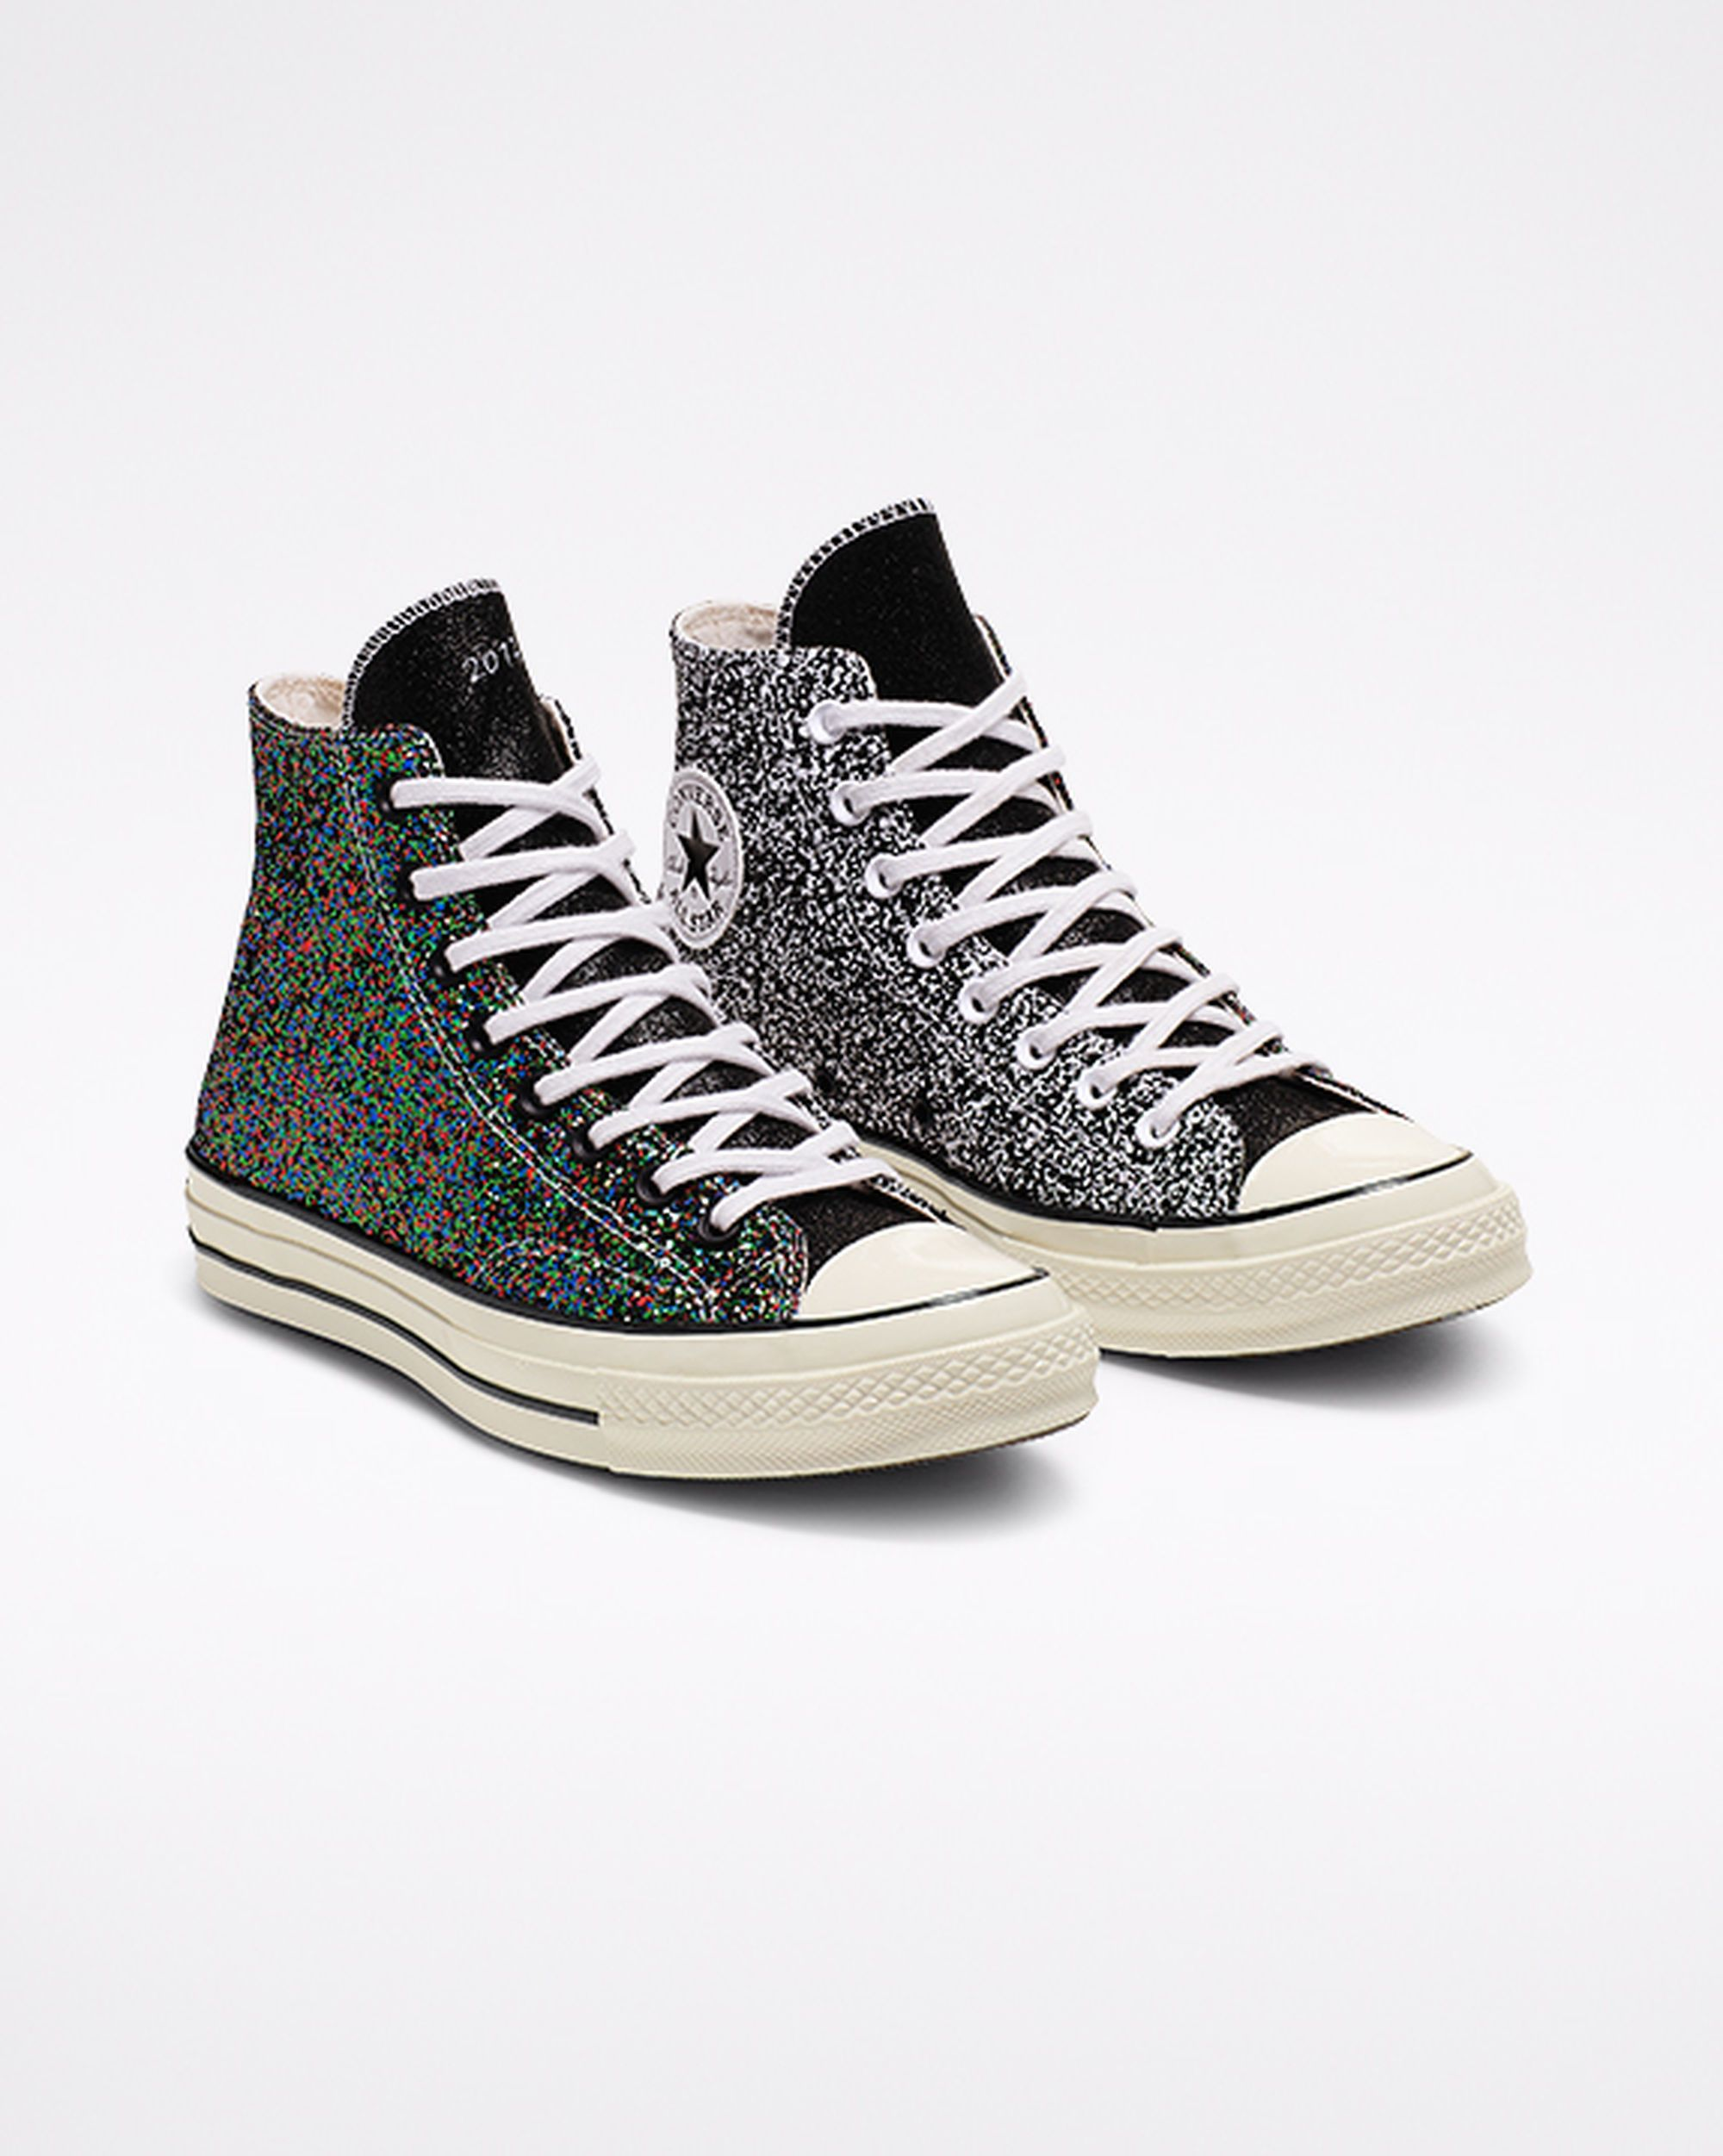 Converse x JW Anderson Glitter Chuck 70 High Top Black/White ...